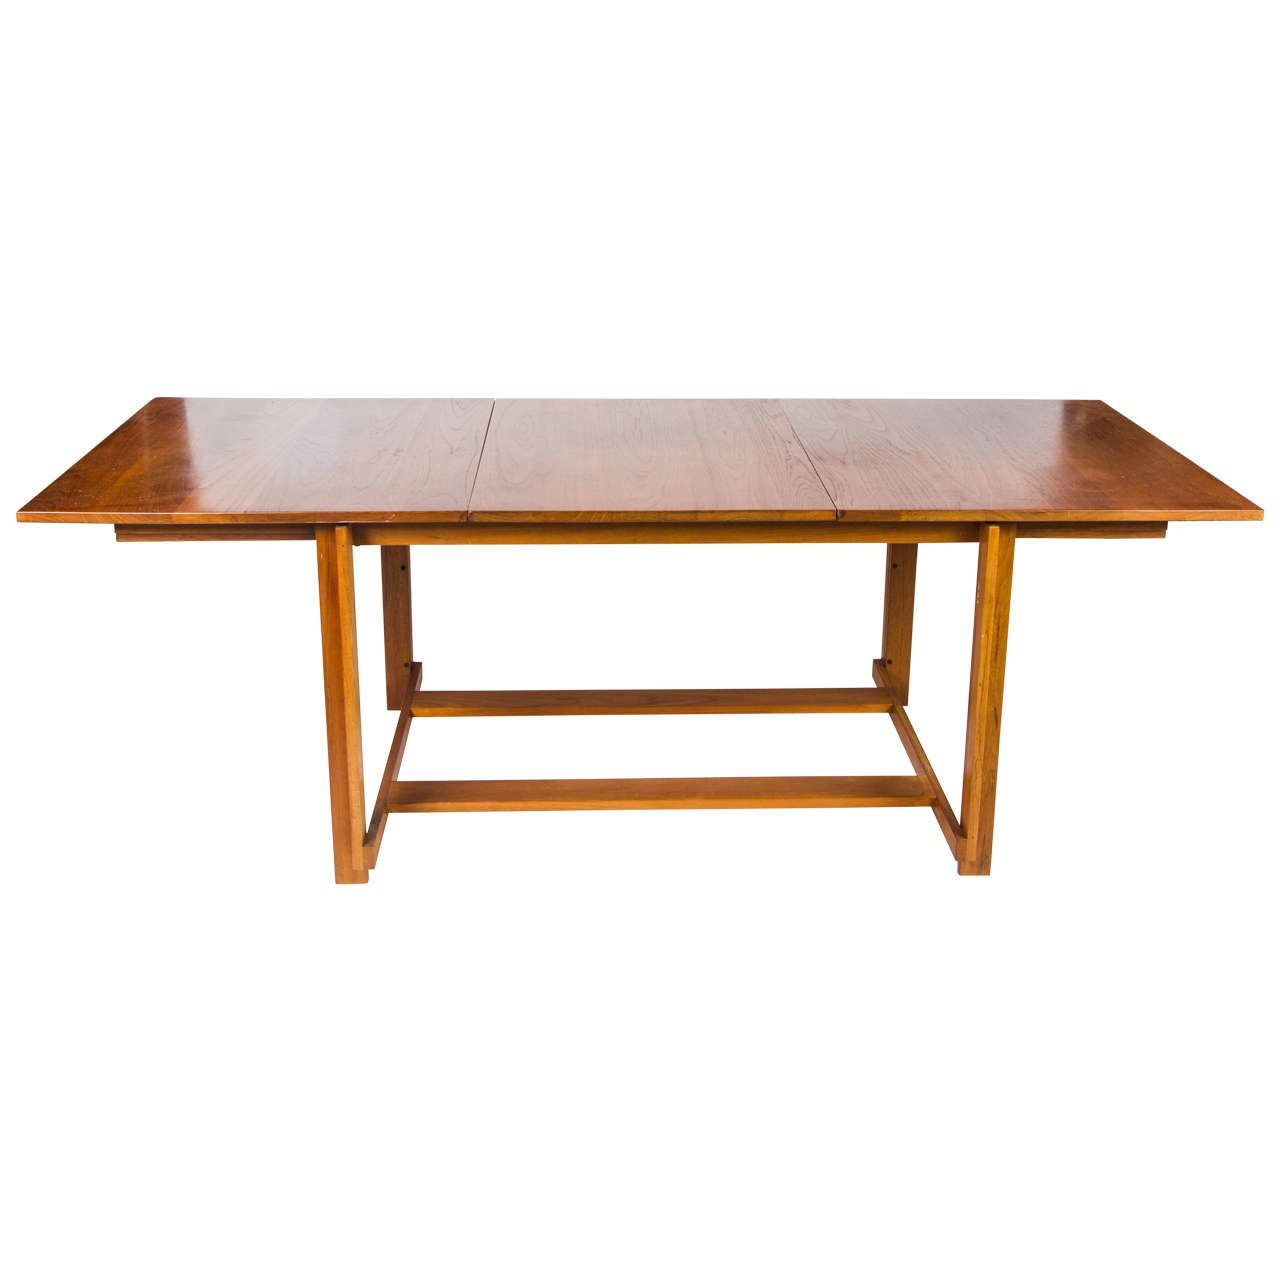 An Unusual 1960s Dining Table By The Danish Manufacturers France U0026 Sons.  Beautifully Made In